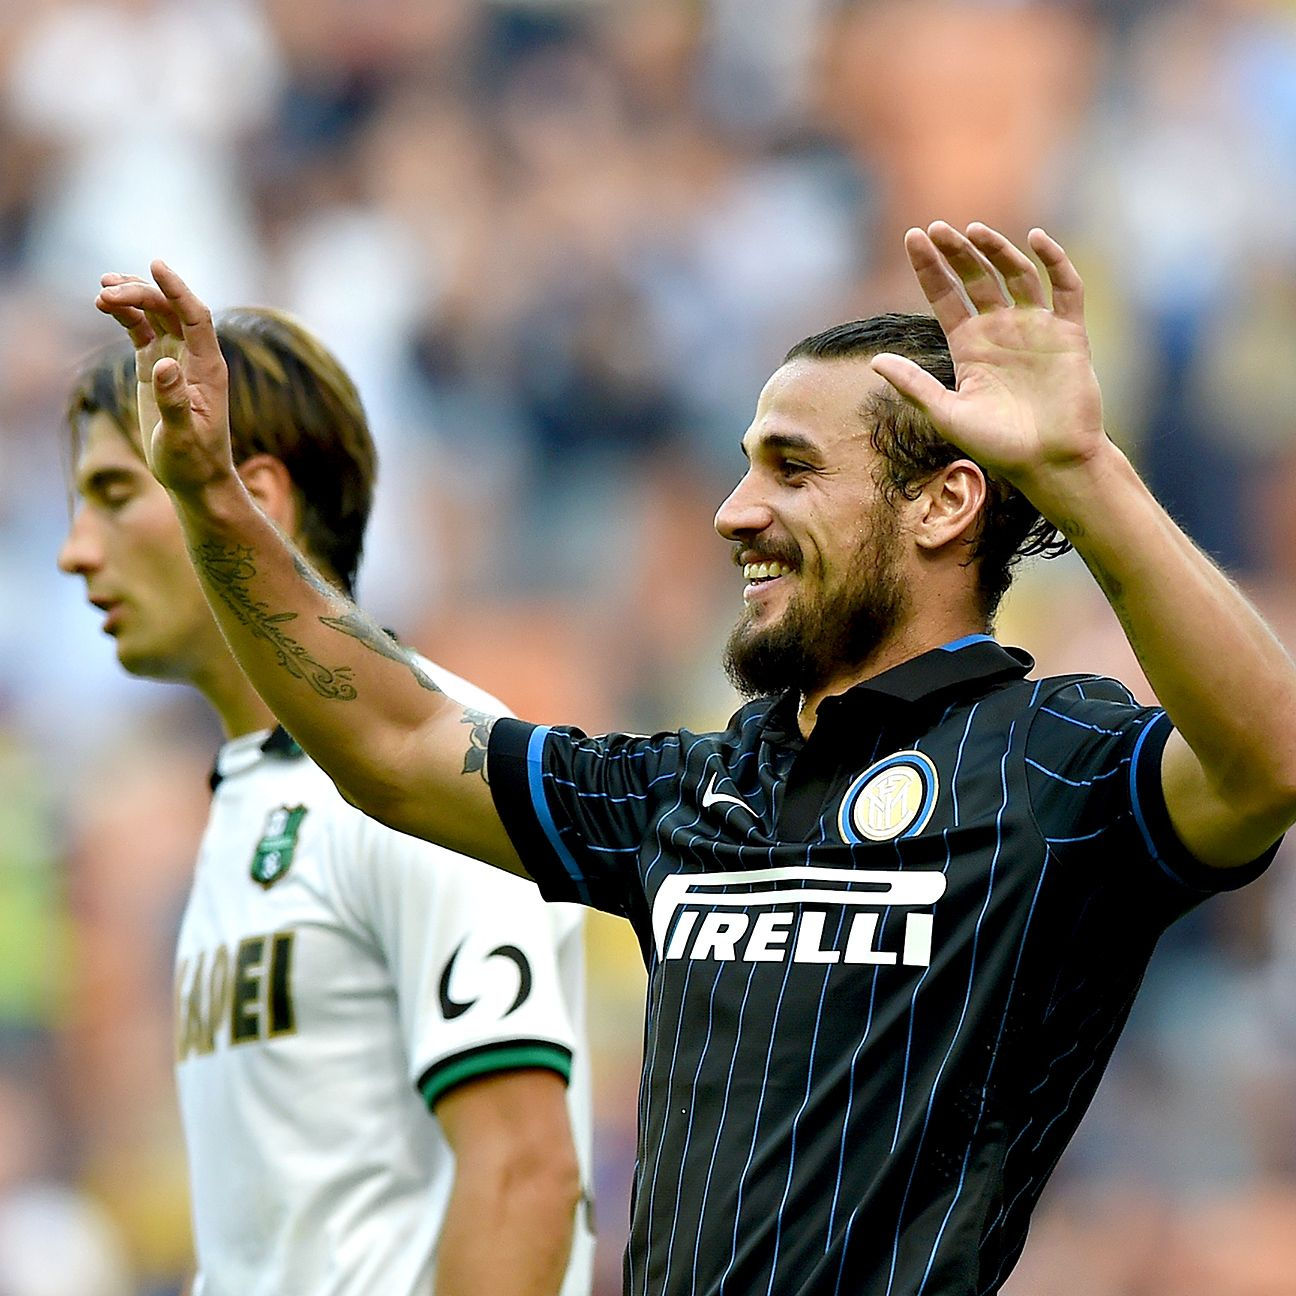 Inter's last meeting with Sassuolo ended with a 7-0 victory for Dani Osvaldo and the Nerazzurri.